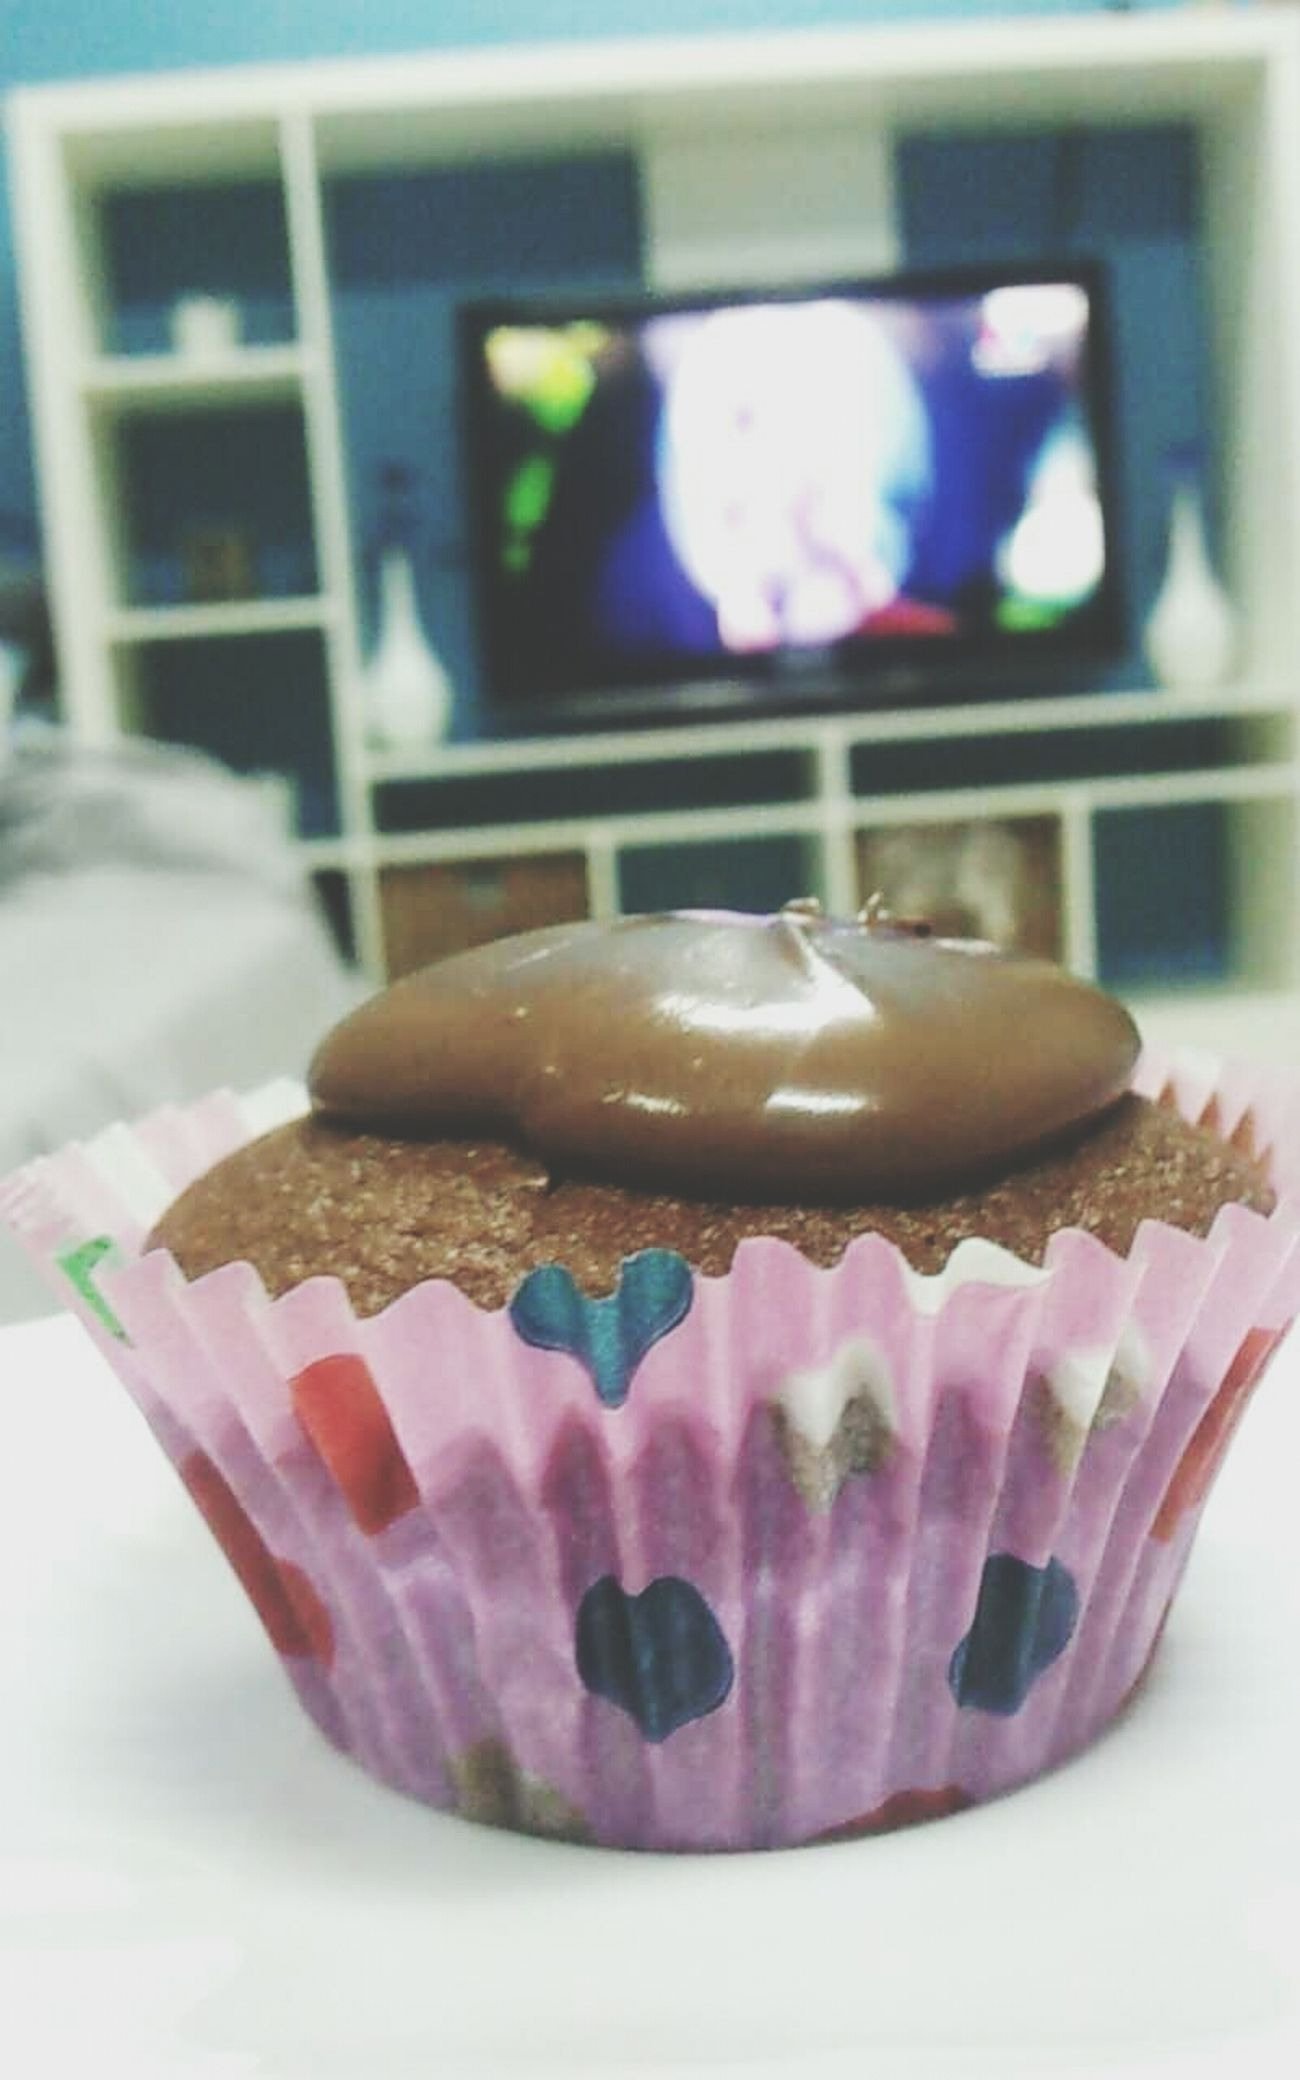 Enjoying Life Sophleeh Chocolate Cake♥ Morning Cake First Eyeem Photo